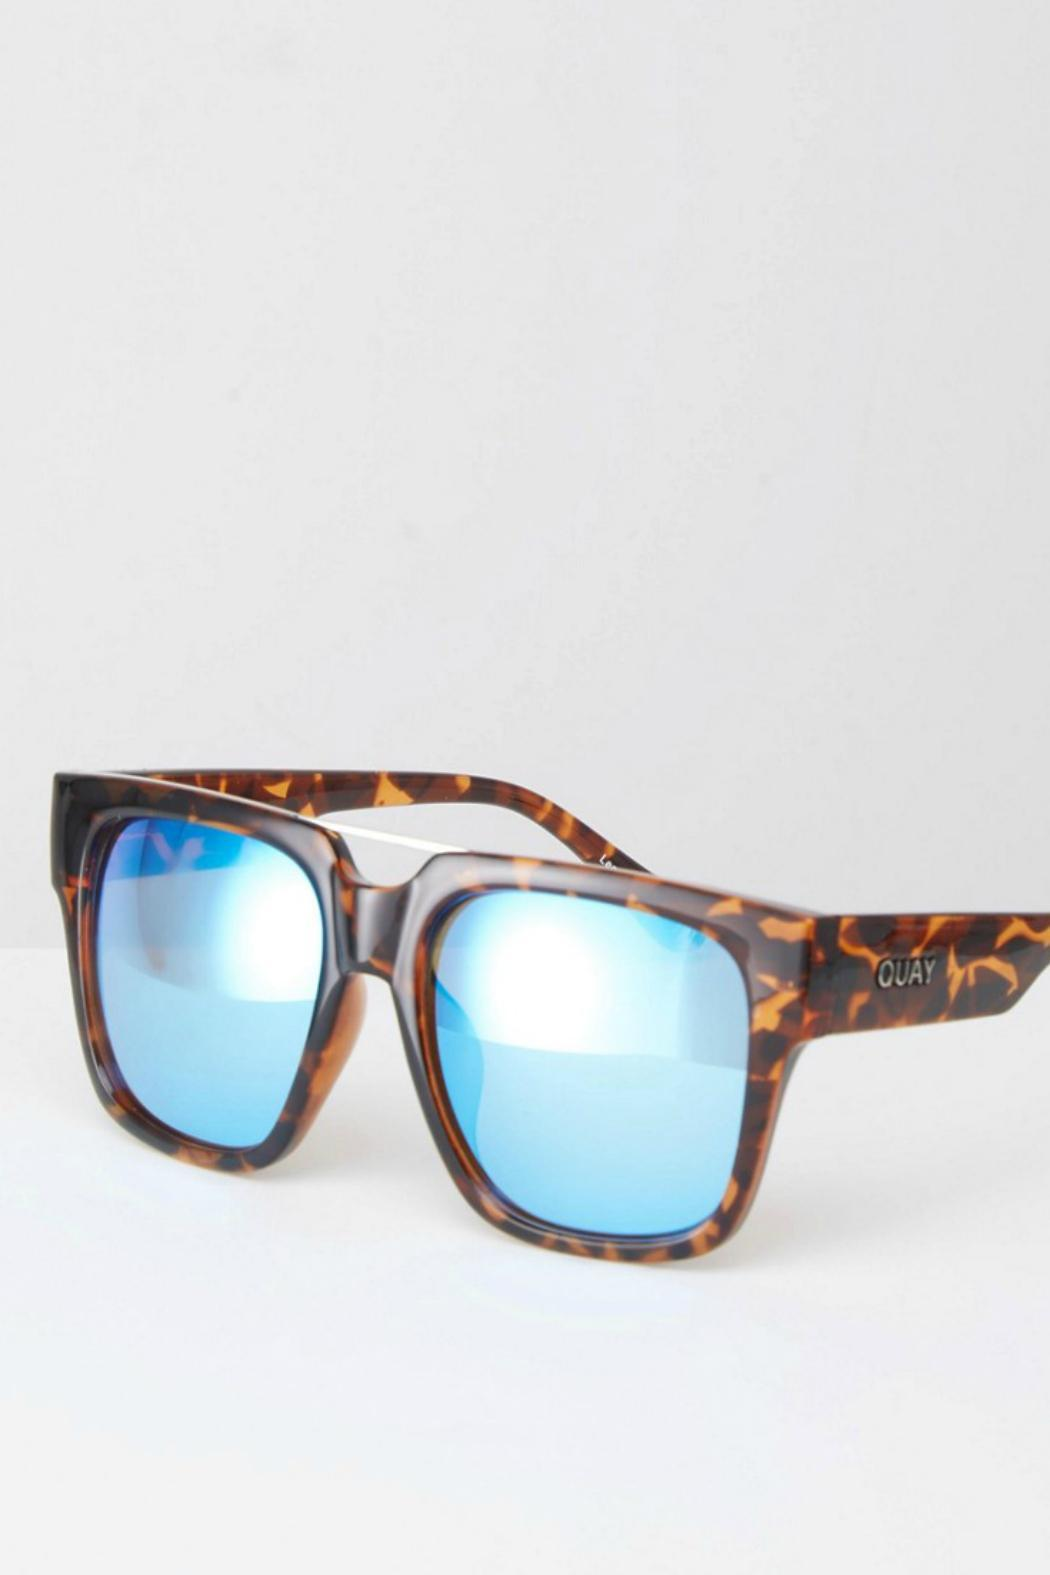 quay australia quay mila sunnies from texas by poe and